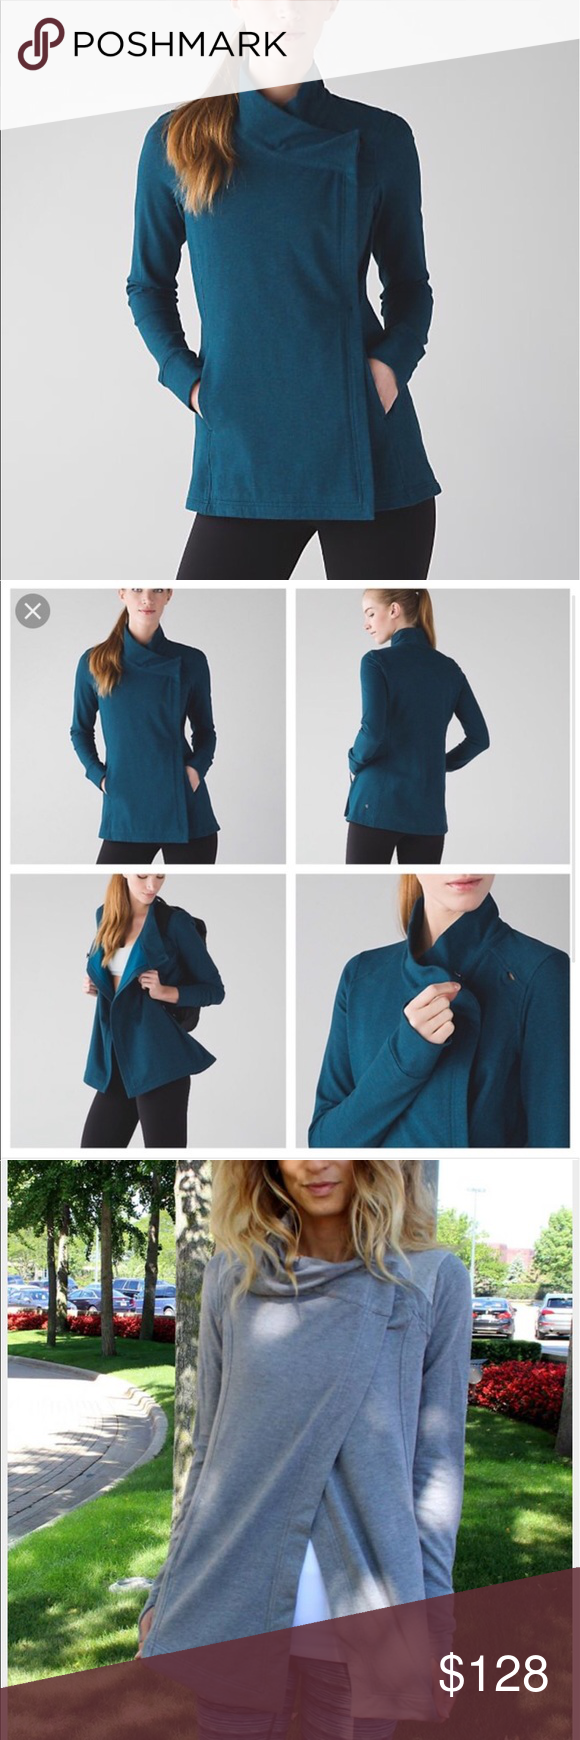 Lululemon Coat Wrap ll NWT soft & warm stretch French terry fabric. Button closure. Interior pocket for phone or iPod. Thumb holes to secure sleeves in place. Loose fit. Hits at hip lululemon athletica Jackets & Coats